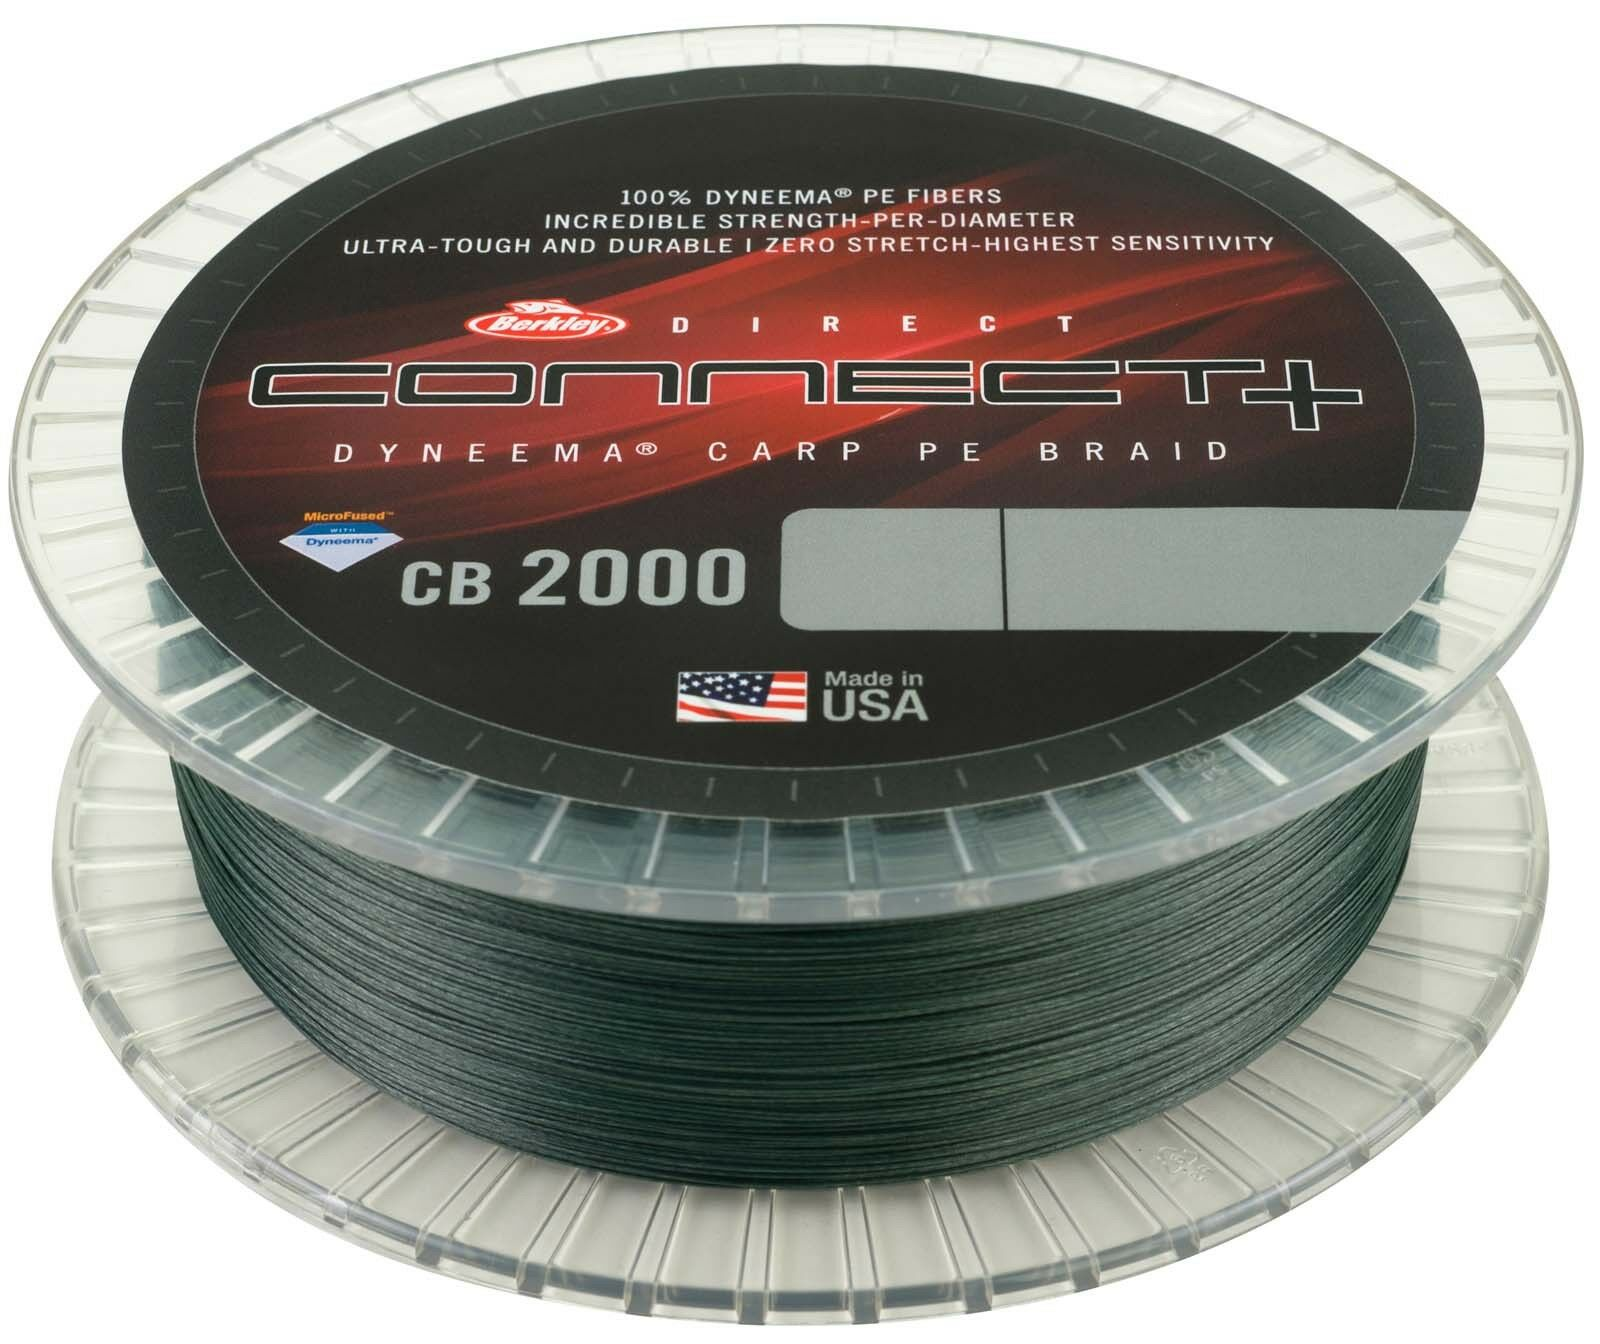 Berkley Connect Easy Casting CB2000 20-100lb Braid Carp Fishing Fishing Fishing Line 900m 06c0ef